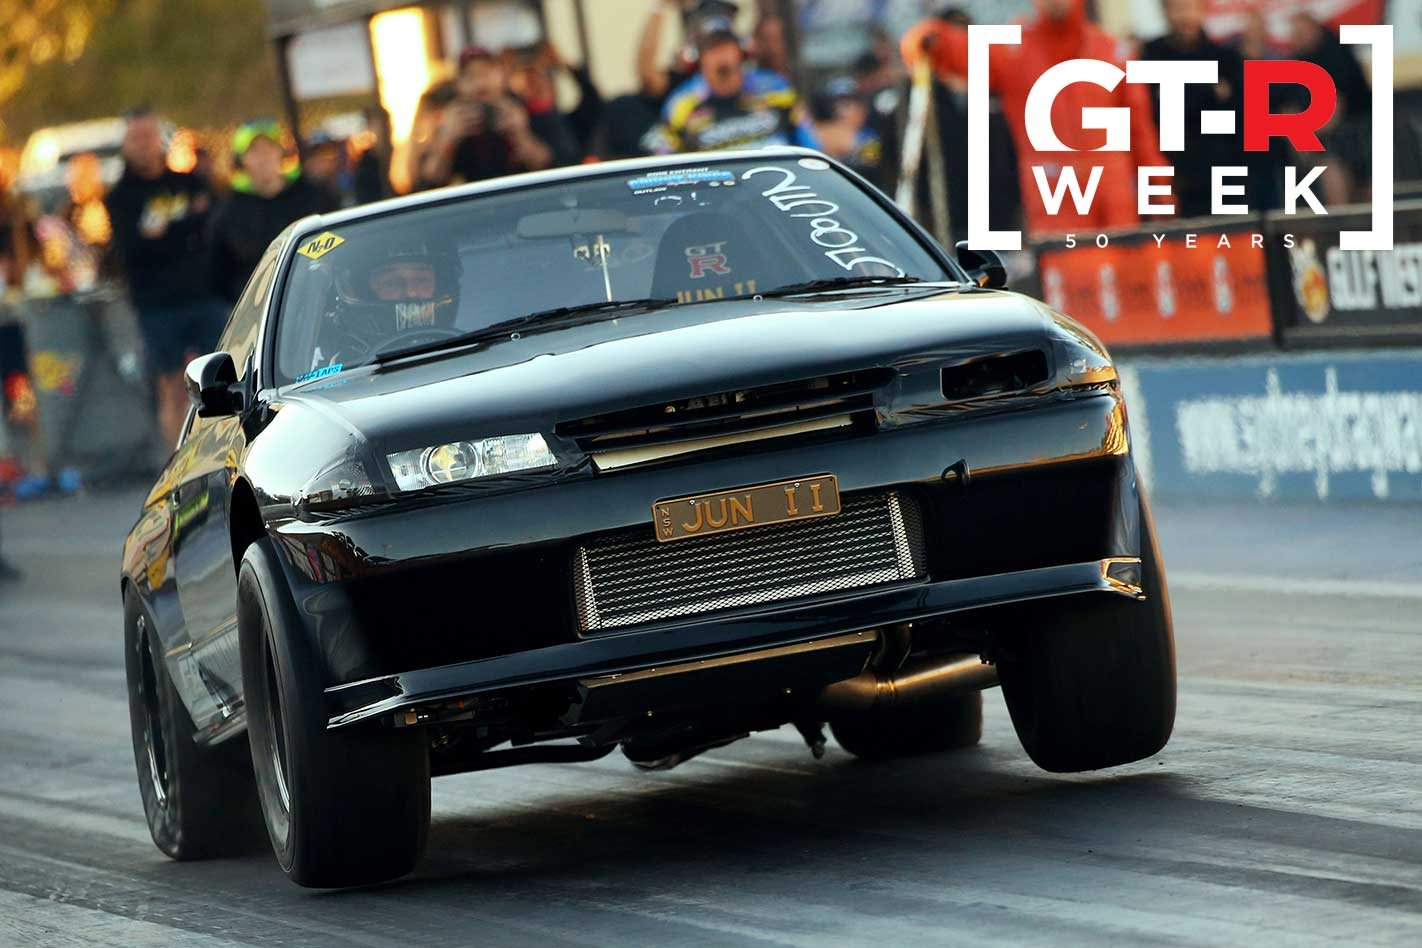 """JUN II"" Nissan R32 Skyline GT-R: The world's quickest street-legal Skyline"